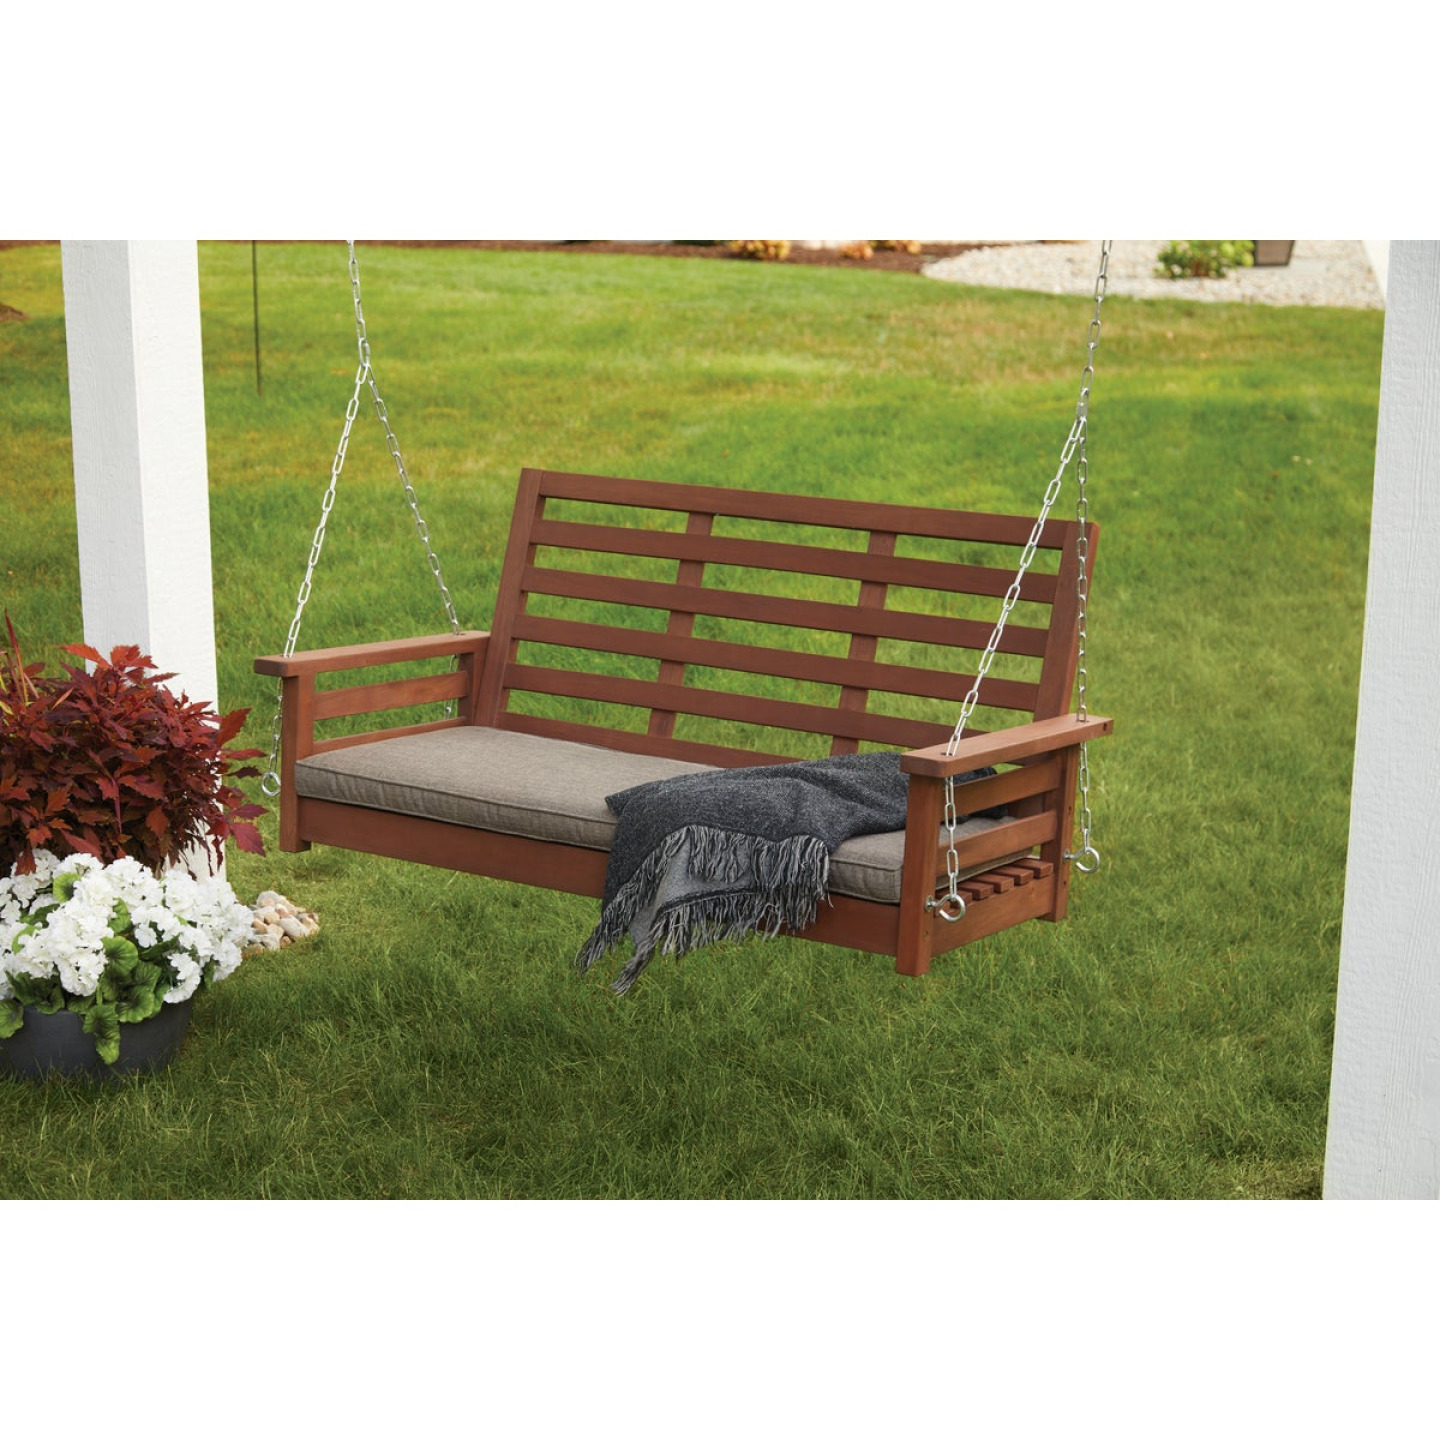 Jack Post 51 In. W. x 23.5 In. H. x 24 In. D. Indonesian Hardwood Porch Swing Image 2